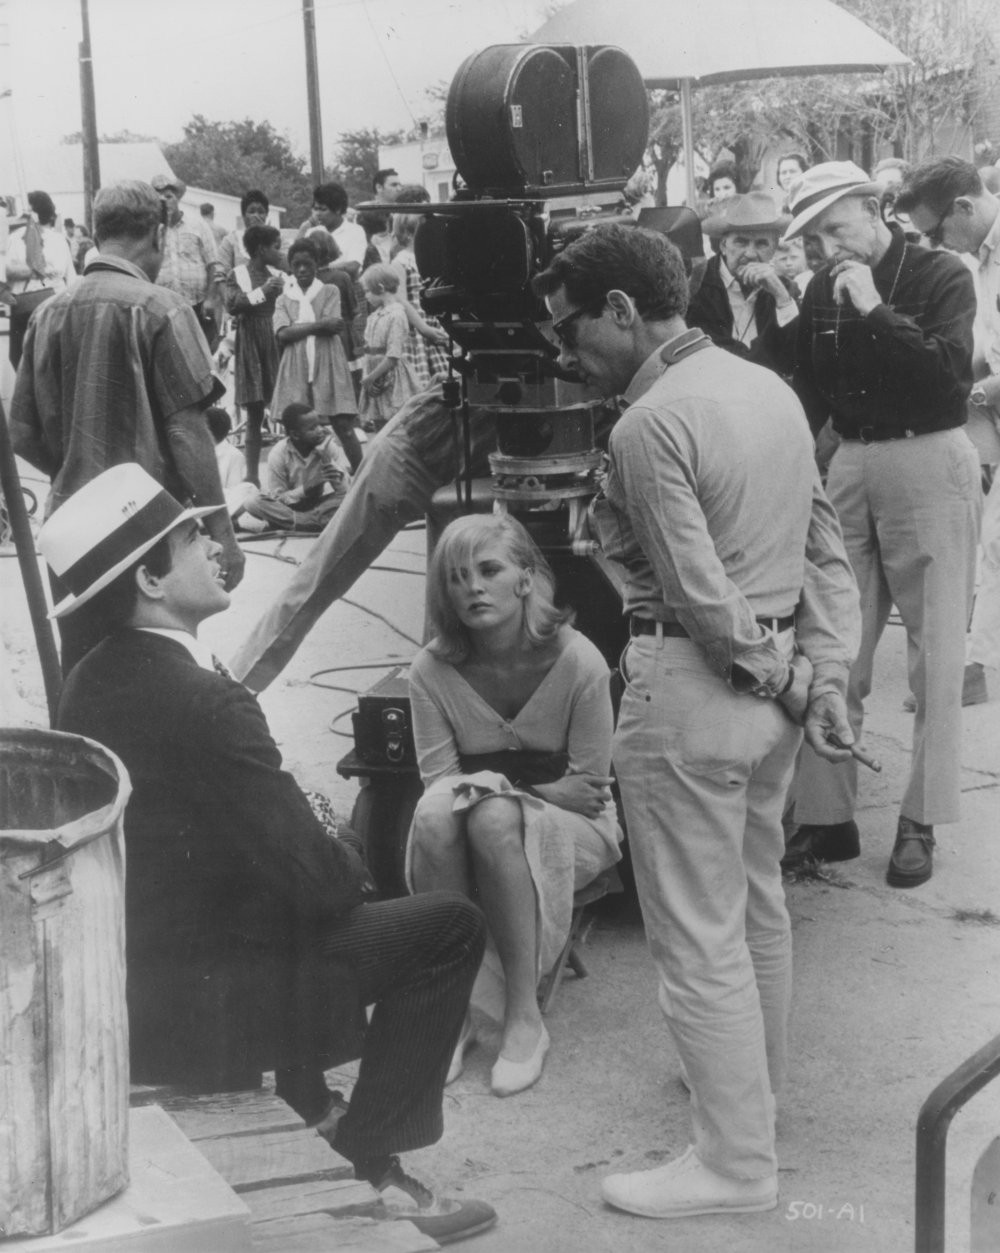 Directing Warren Beatty and Faye Dunaway in Bonnie and Clyde (1967)